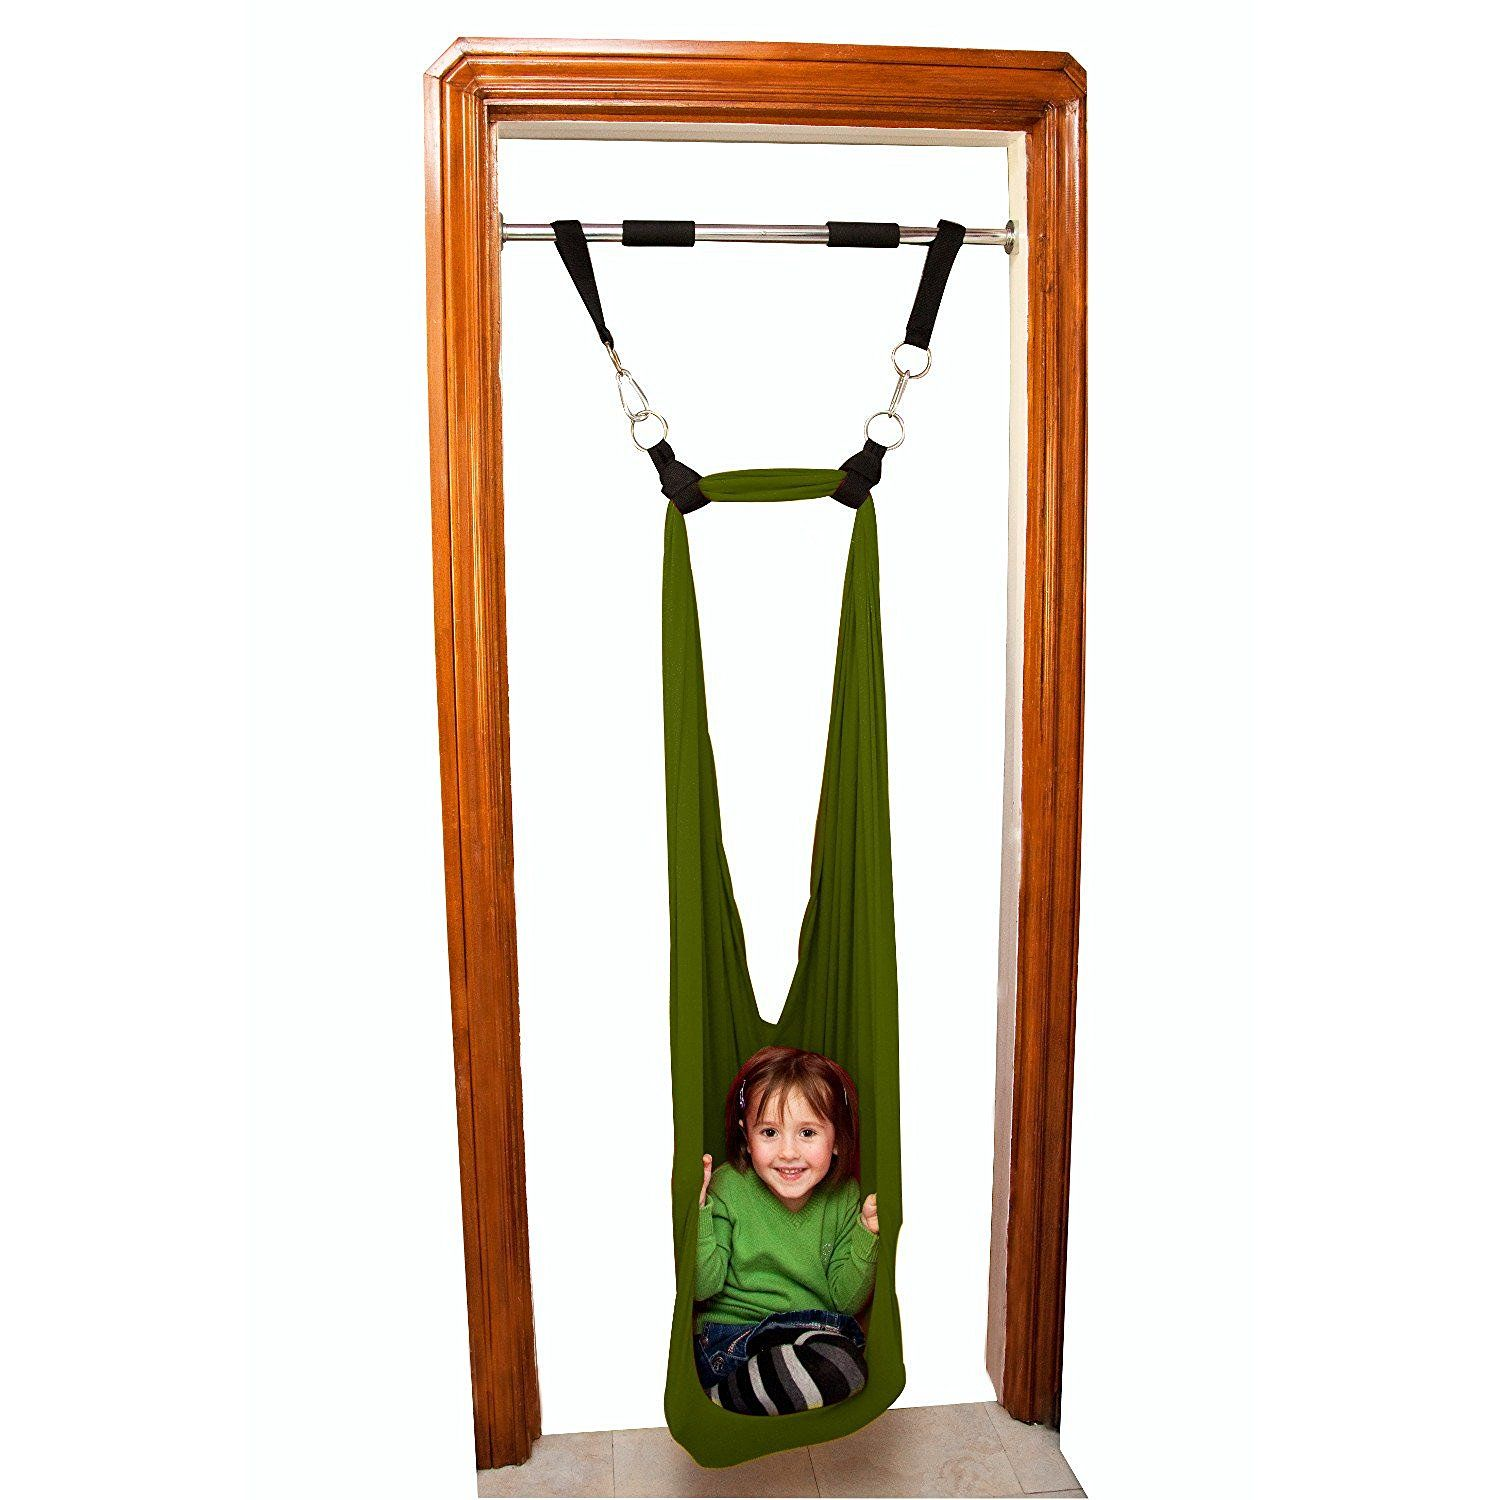 Amazon.com: DreamGYM Door Frame Sensory Swing for Kids. Therapy ...